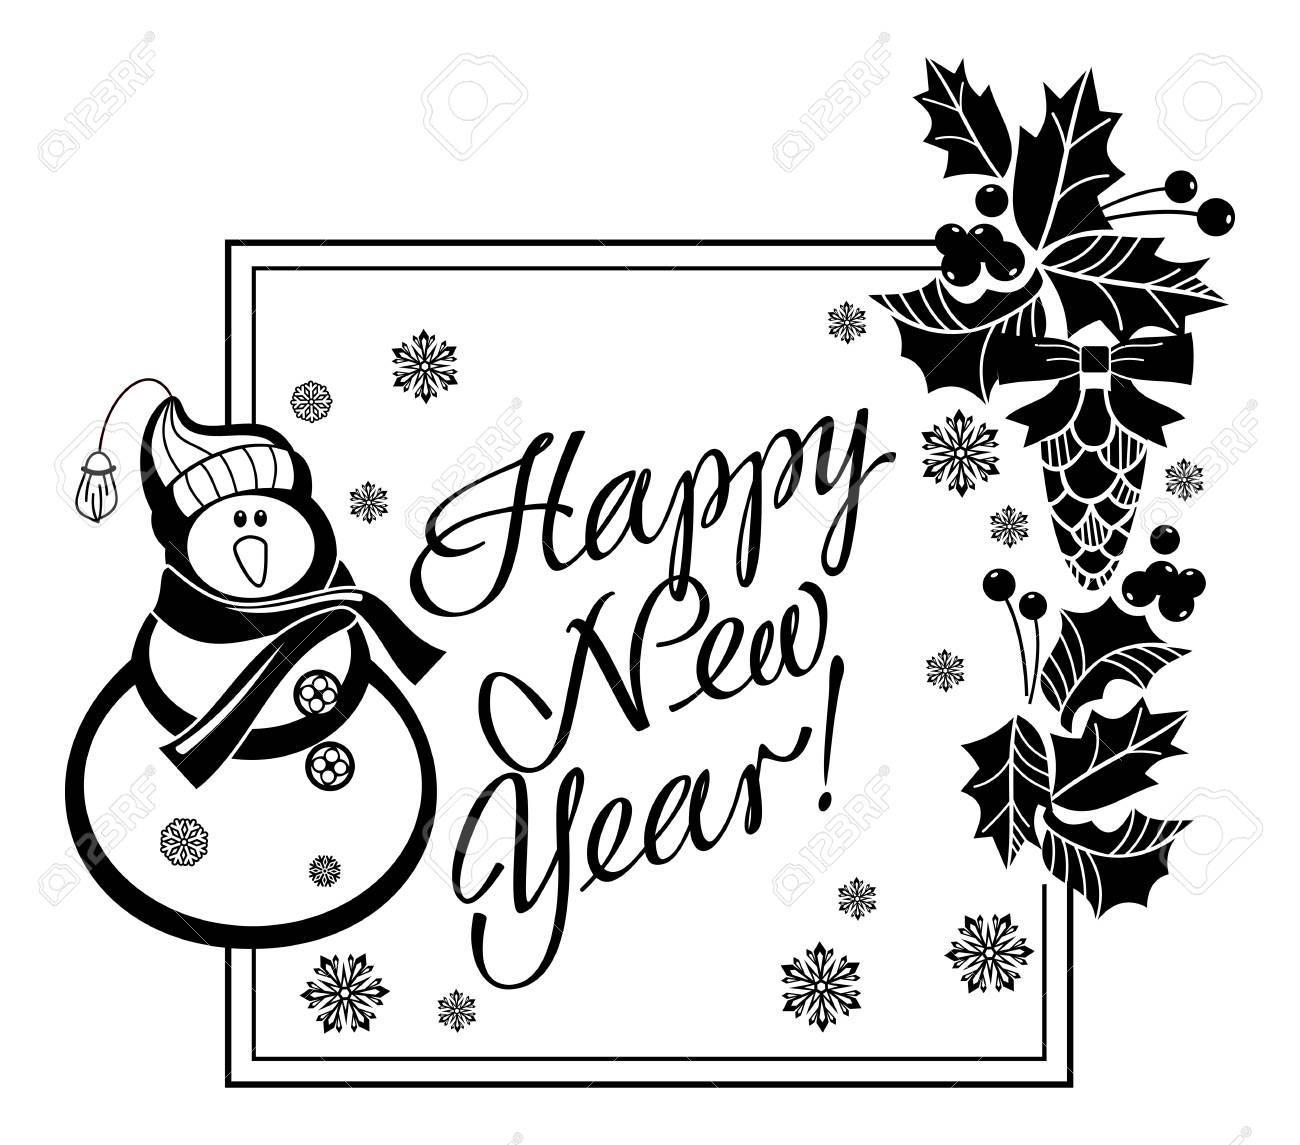 Agréable Dessin Happy New Year 34 Dans Coloriage idée with Dessin Happy New Year